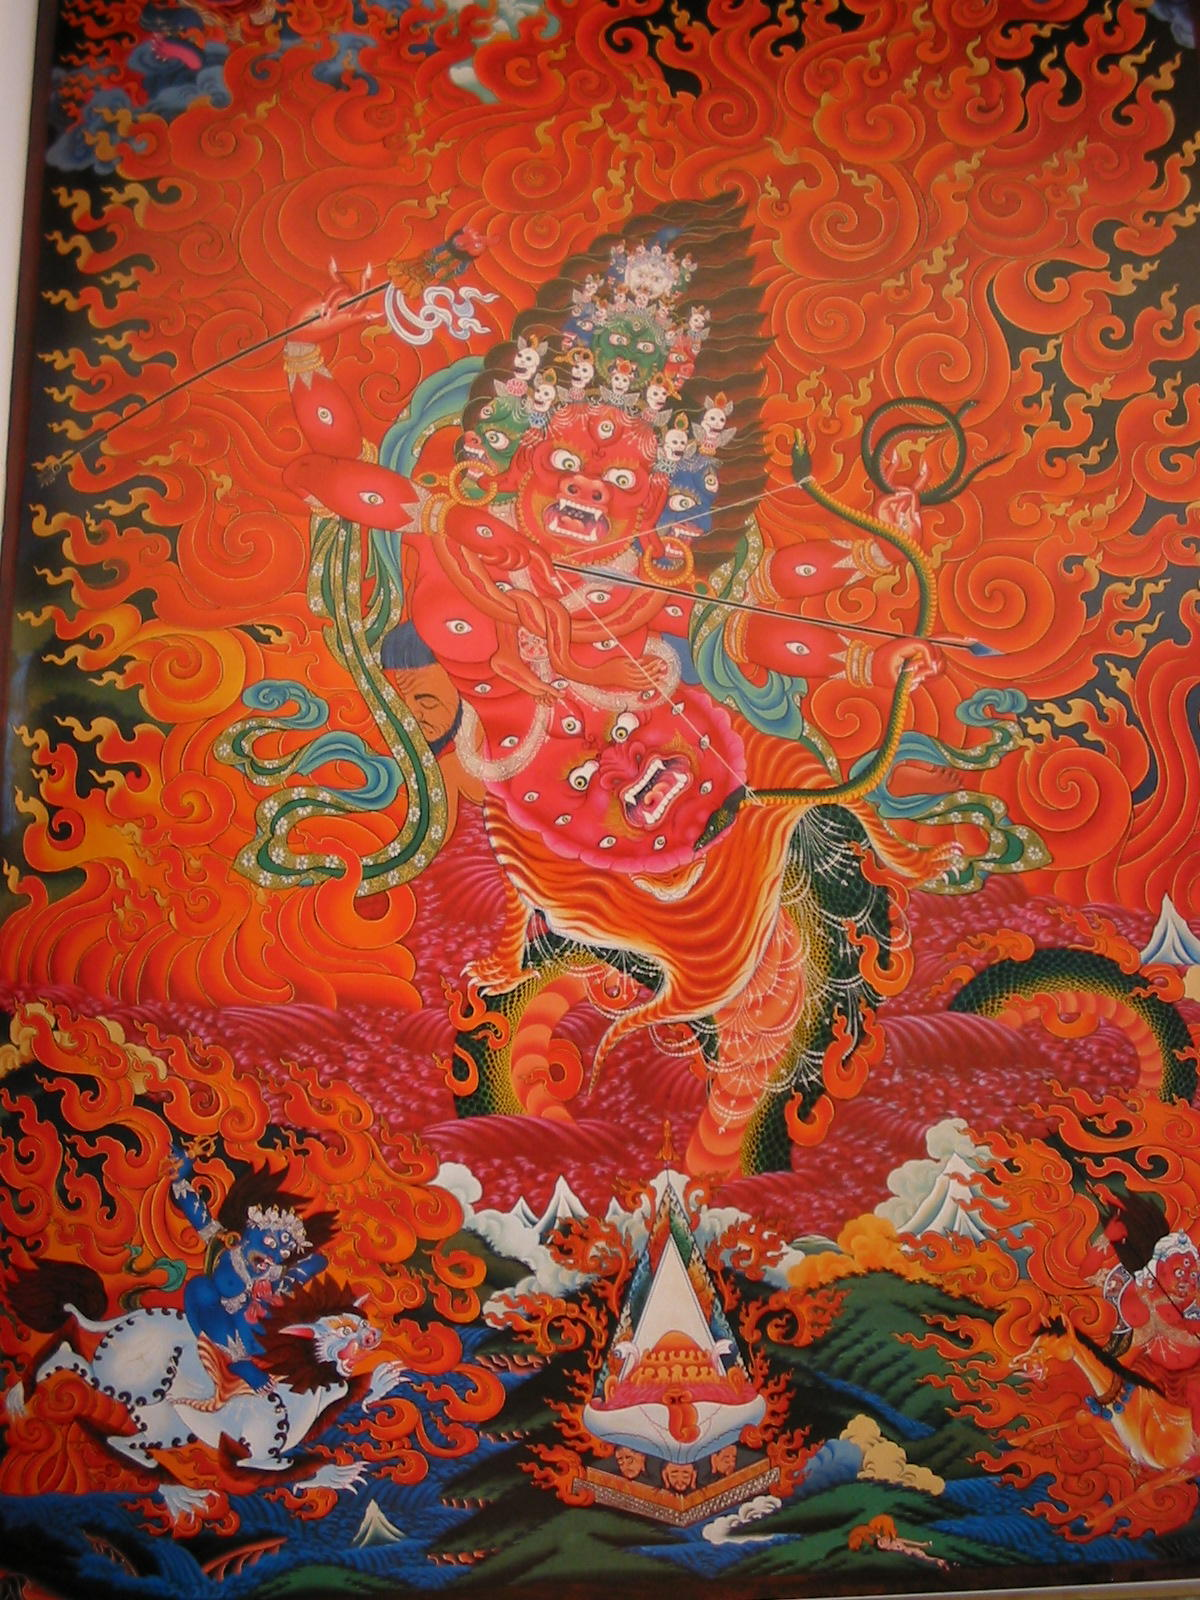 The Tibetan Bon Terma of the Naga/Serpent Cults containing The ...